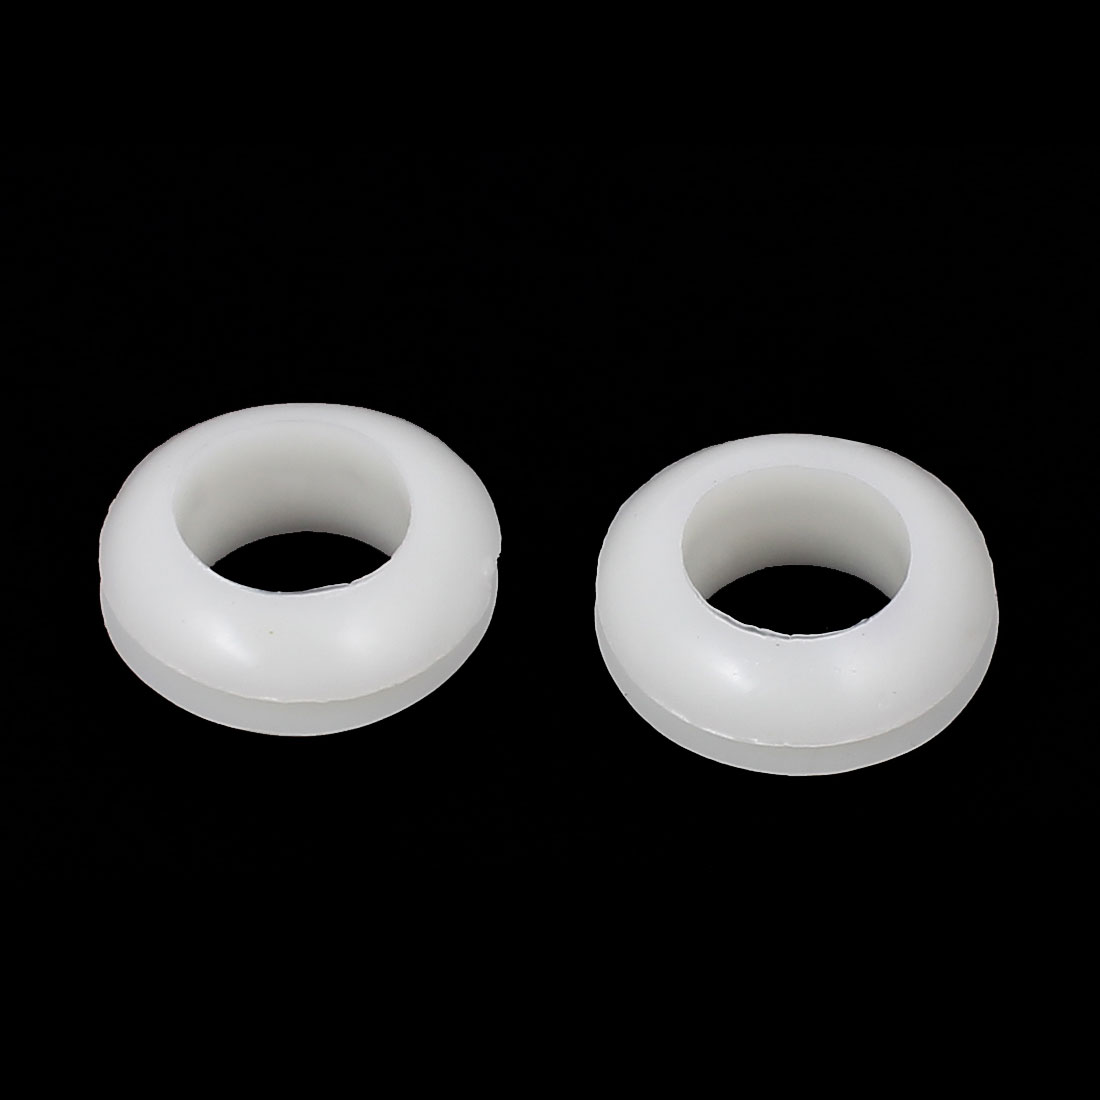 electric cable protector rubber wiring grommets white 10mm inner electric cable protector rubber wiring grommets white [ 1100 x 1100 Pixel ]